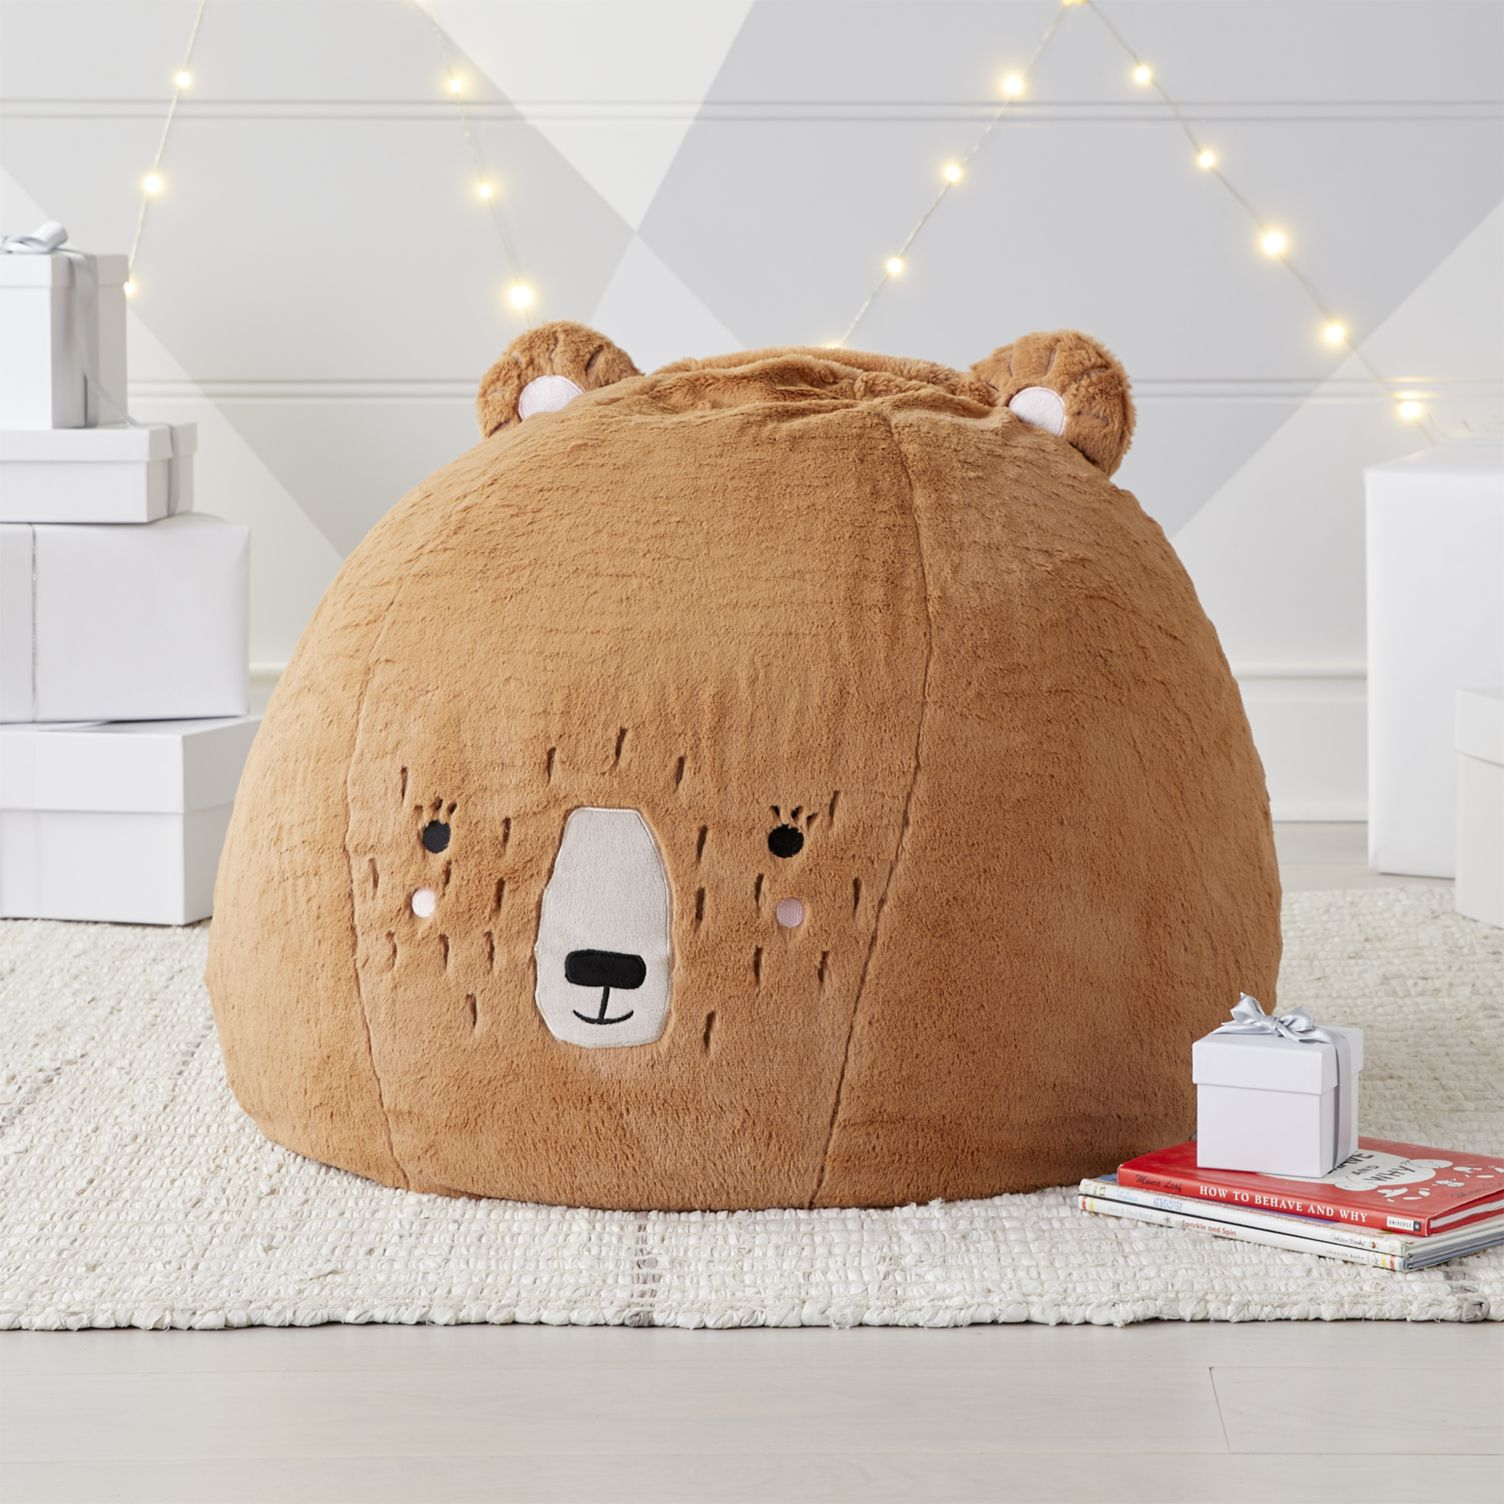 bear bean bag chair wooden office on wheels 2018 gift guide for little ones katie considers